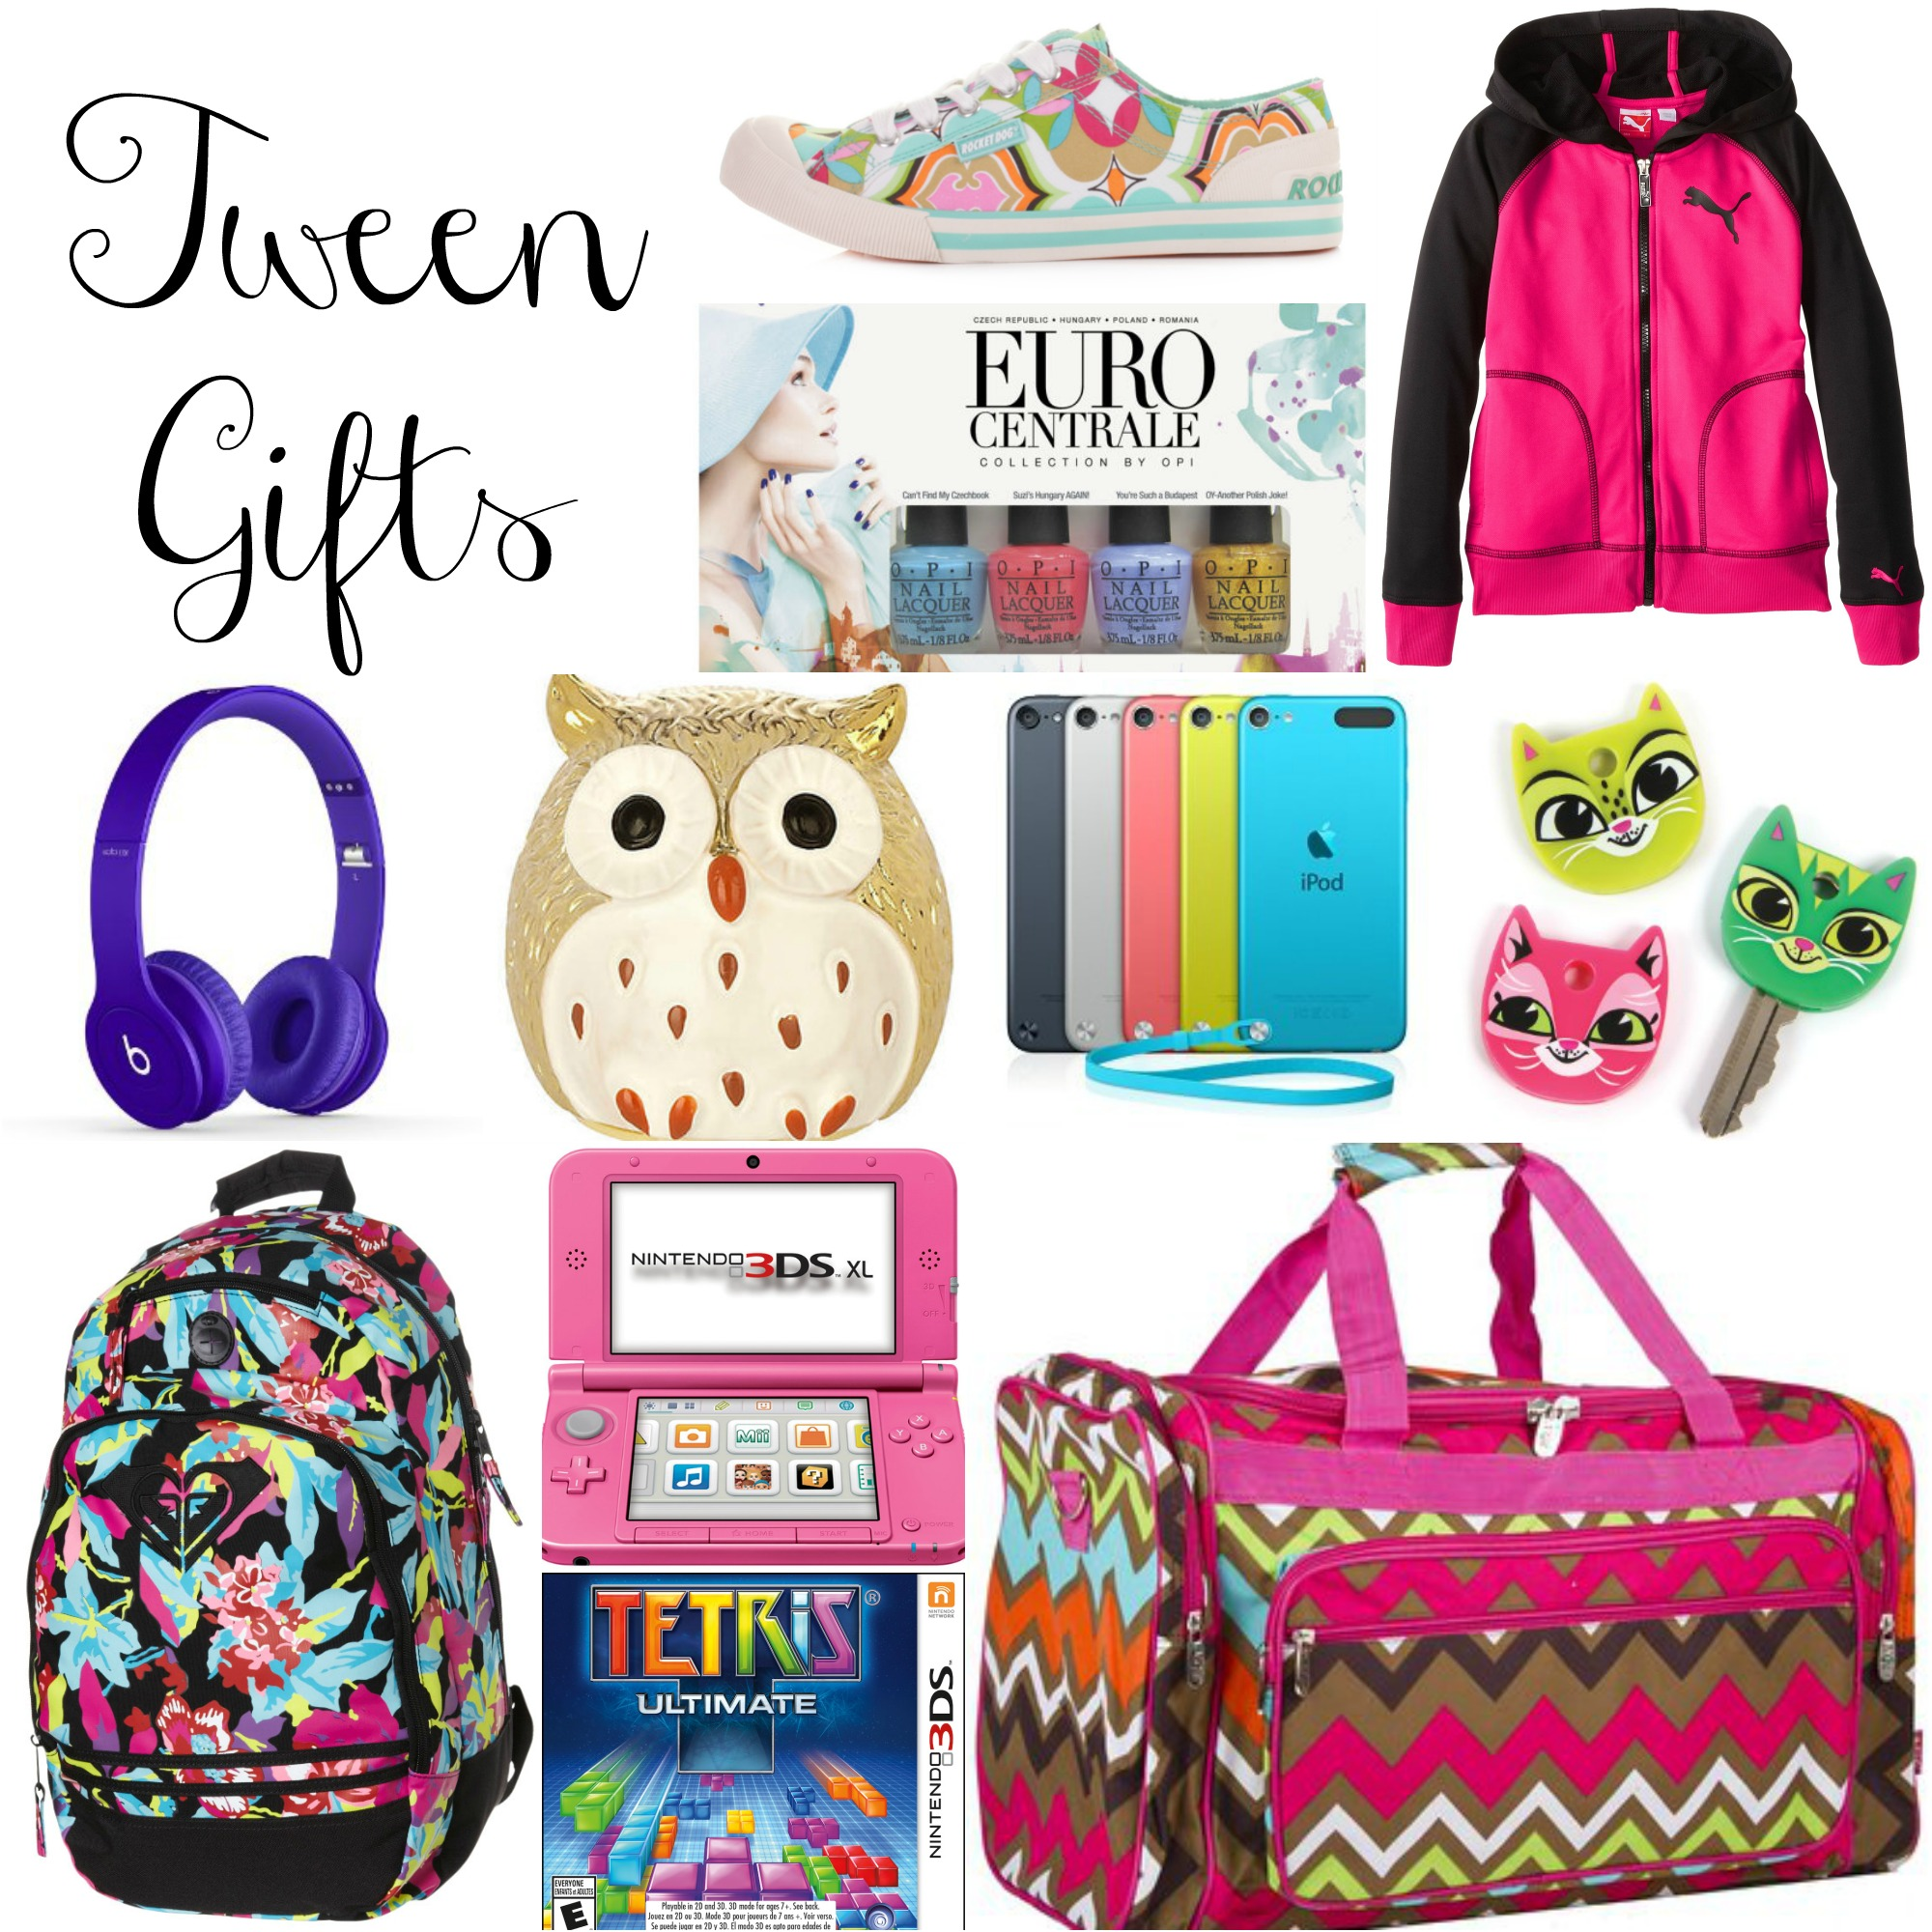 21 great gifts for tweens confessions of a cosmetologistconfessions of a cosmetologist - Best Gifts Christmas 2014